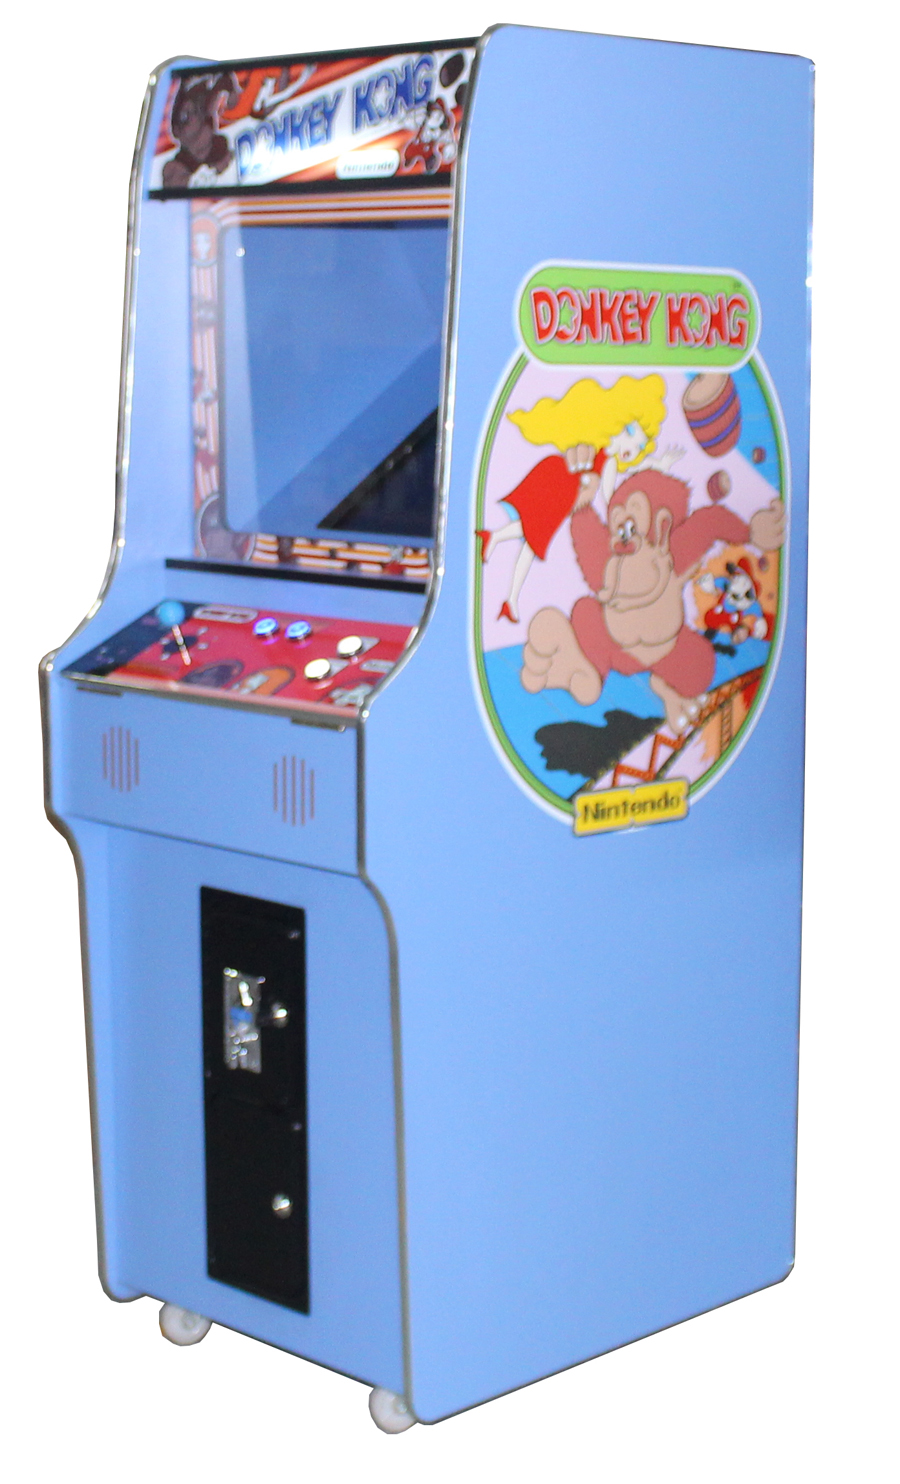 Strange Arcade Rewind 60 In 1 Upright Arcade Machine Donkey Kong Download Free Architecture Designs Crovemadebymaigaardcom